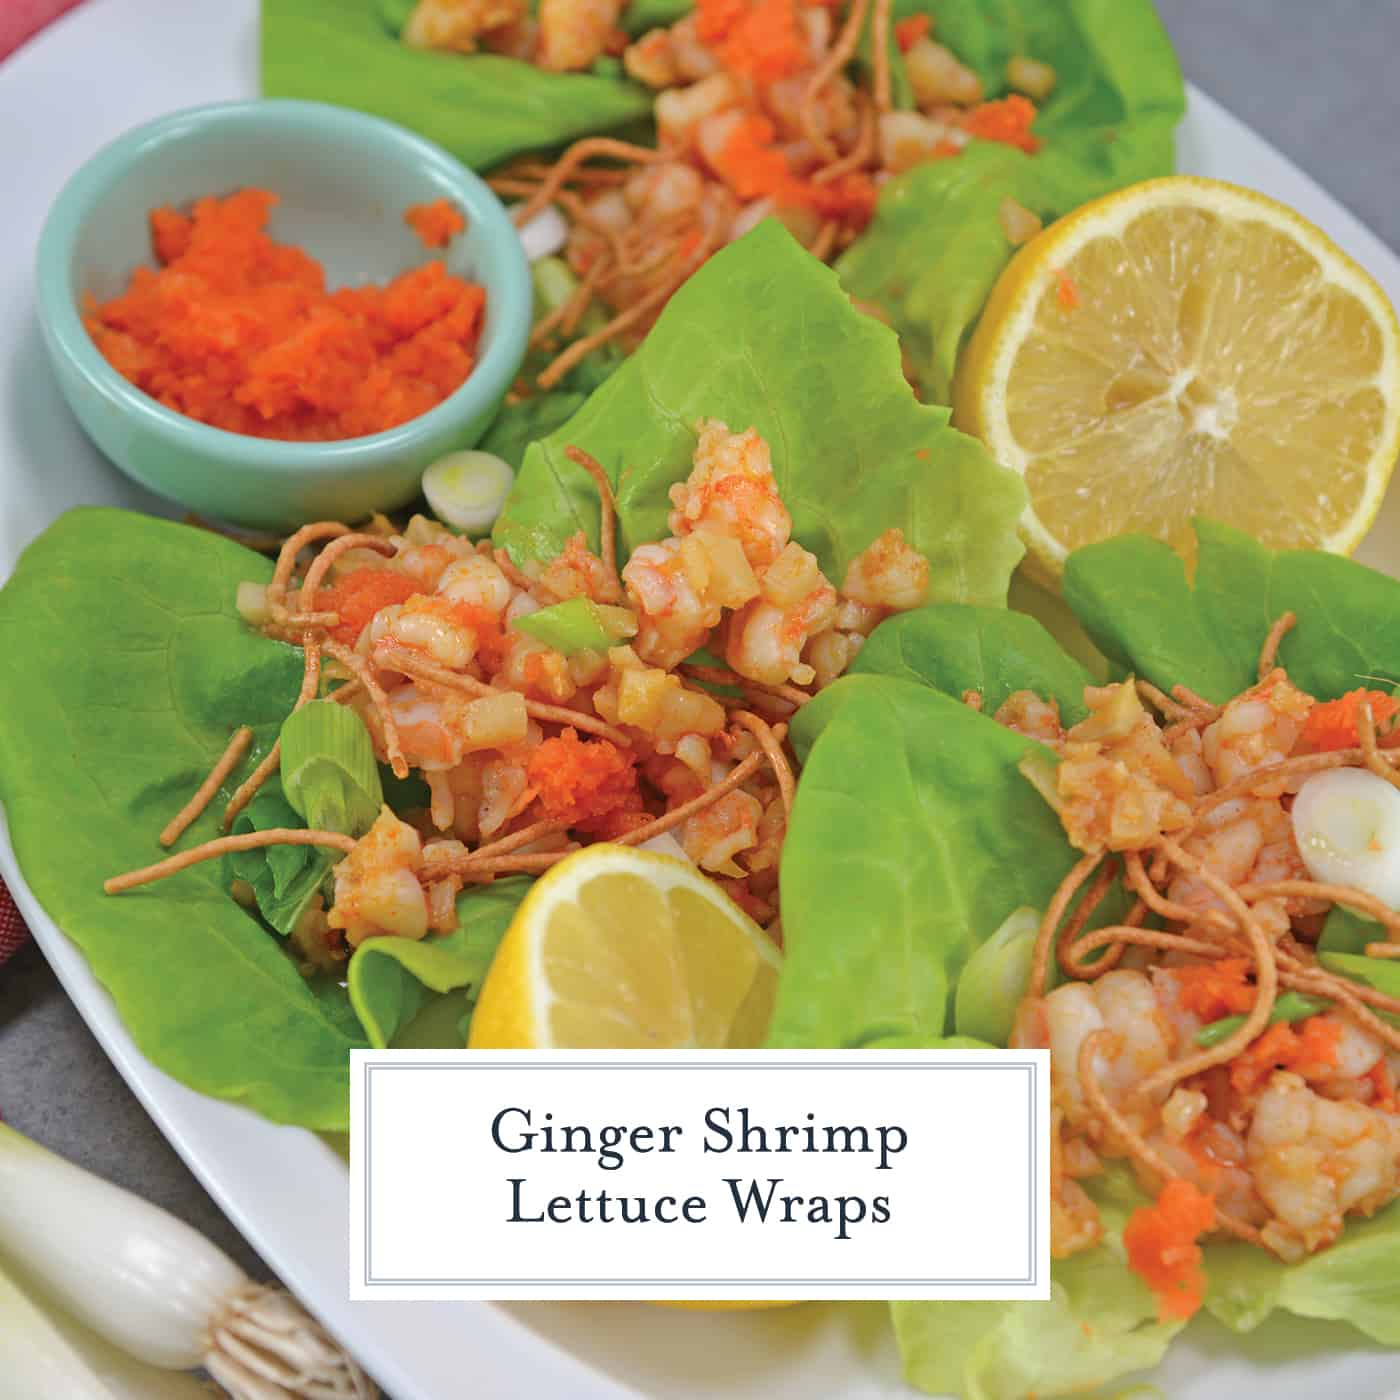 Ginger Shrimp Lettuce Wraps, made with sherry, ginger and garlic, are the perfect appetizer or entrée. Ready in just 15 minutes! #lettucewraps #easyshrimprecipes www.savoryexperiments.com